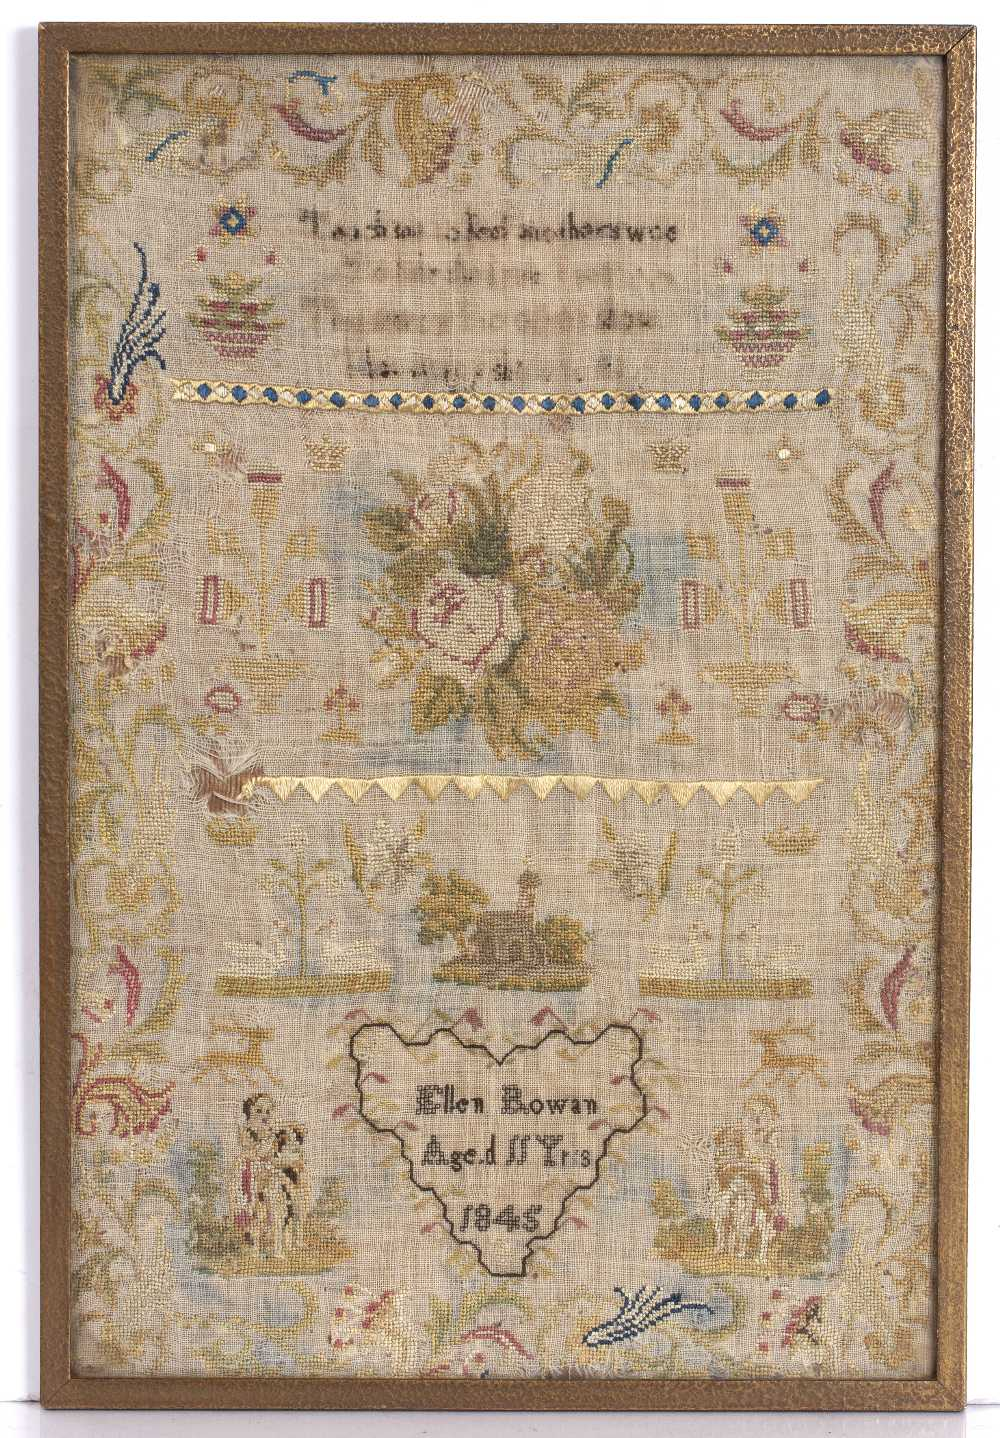 A VICTORIAN NEEDLEWORK SAMPLER by Jane Beach, 1870 in a crossover frame, two further examples and - Image 5 of 8